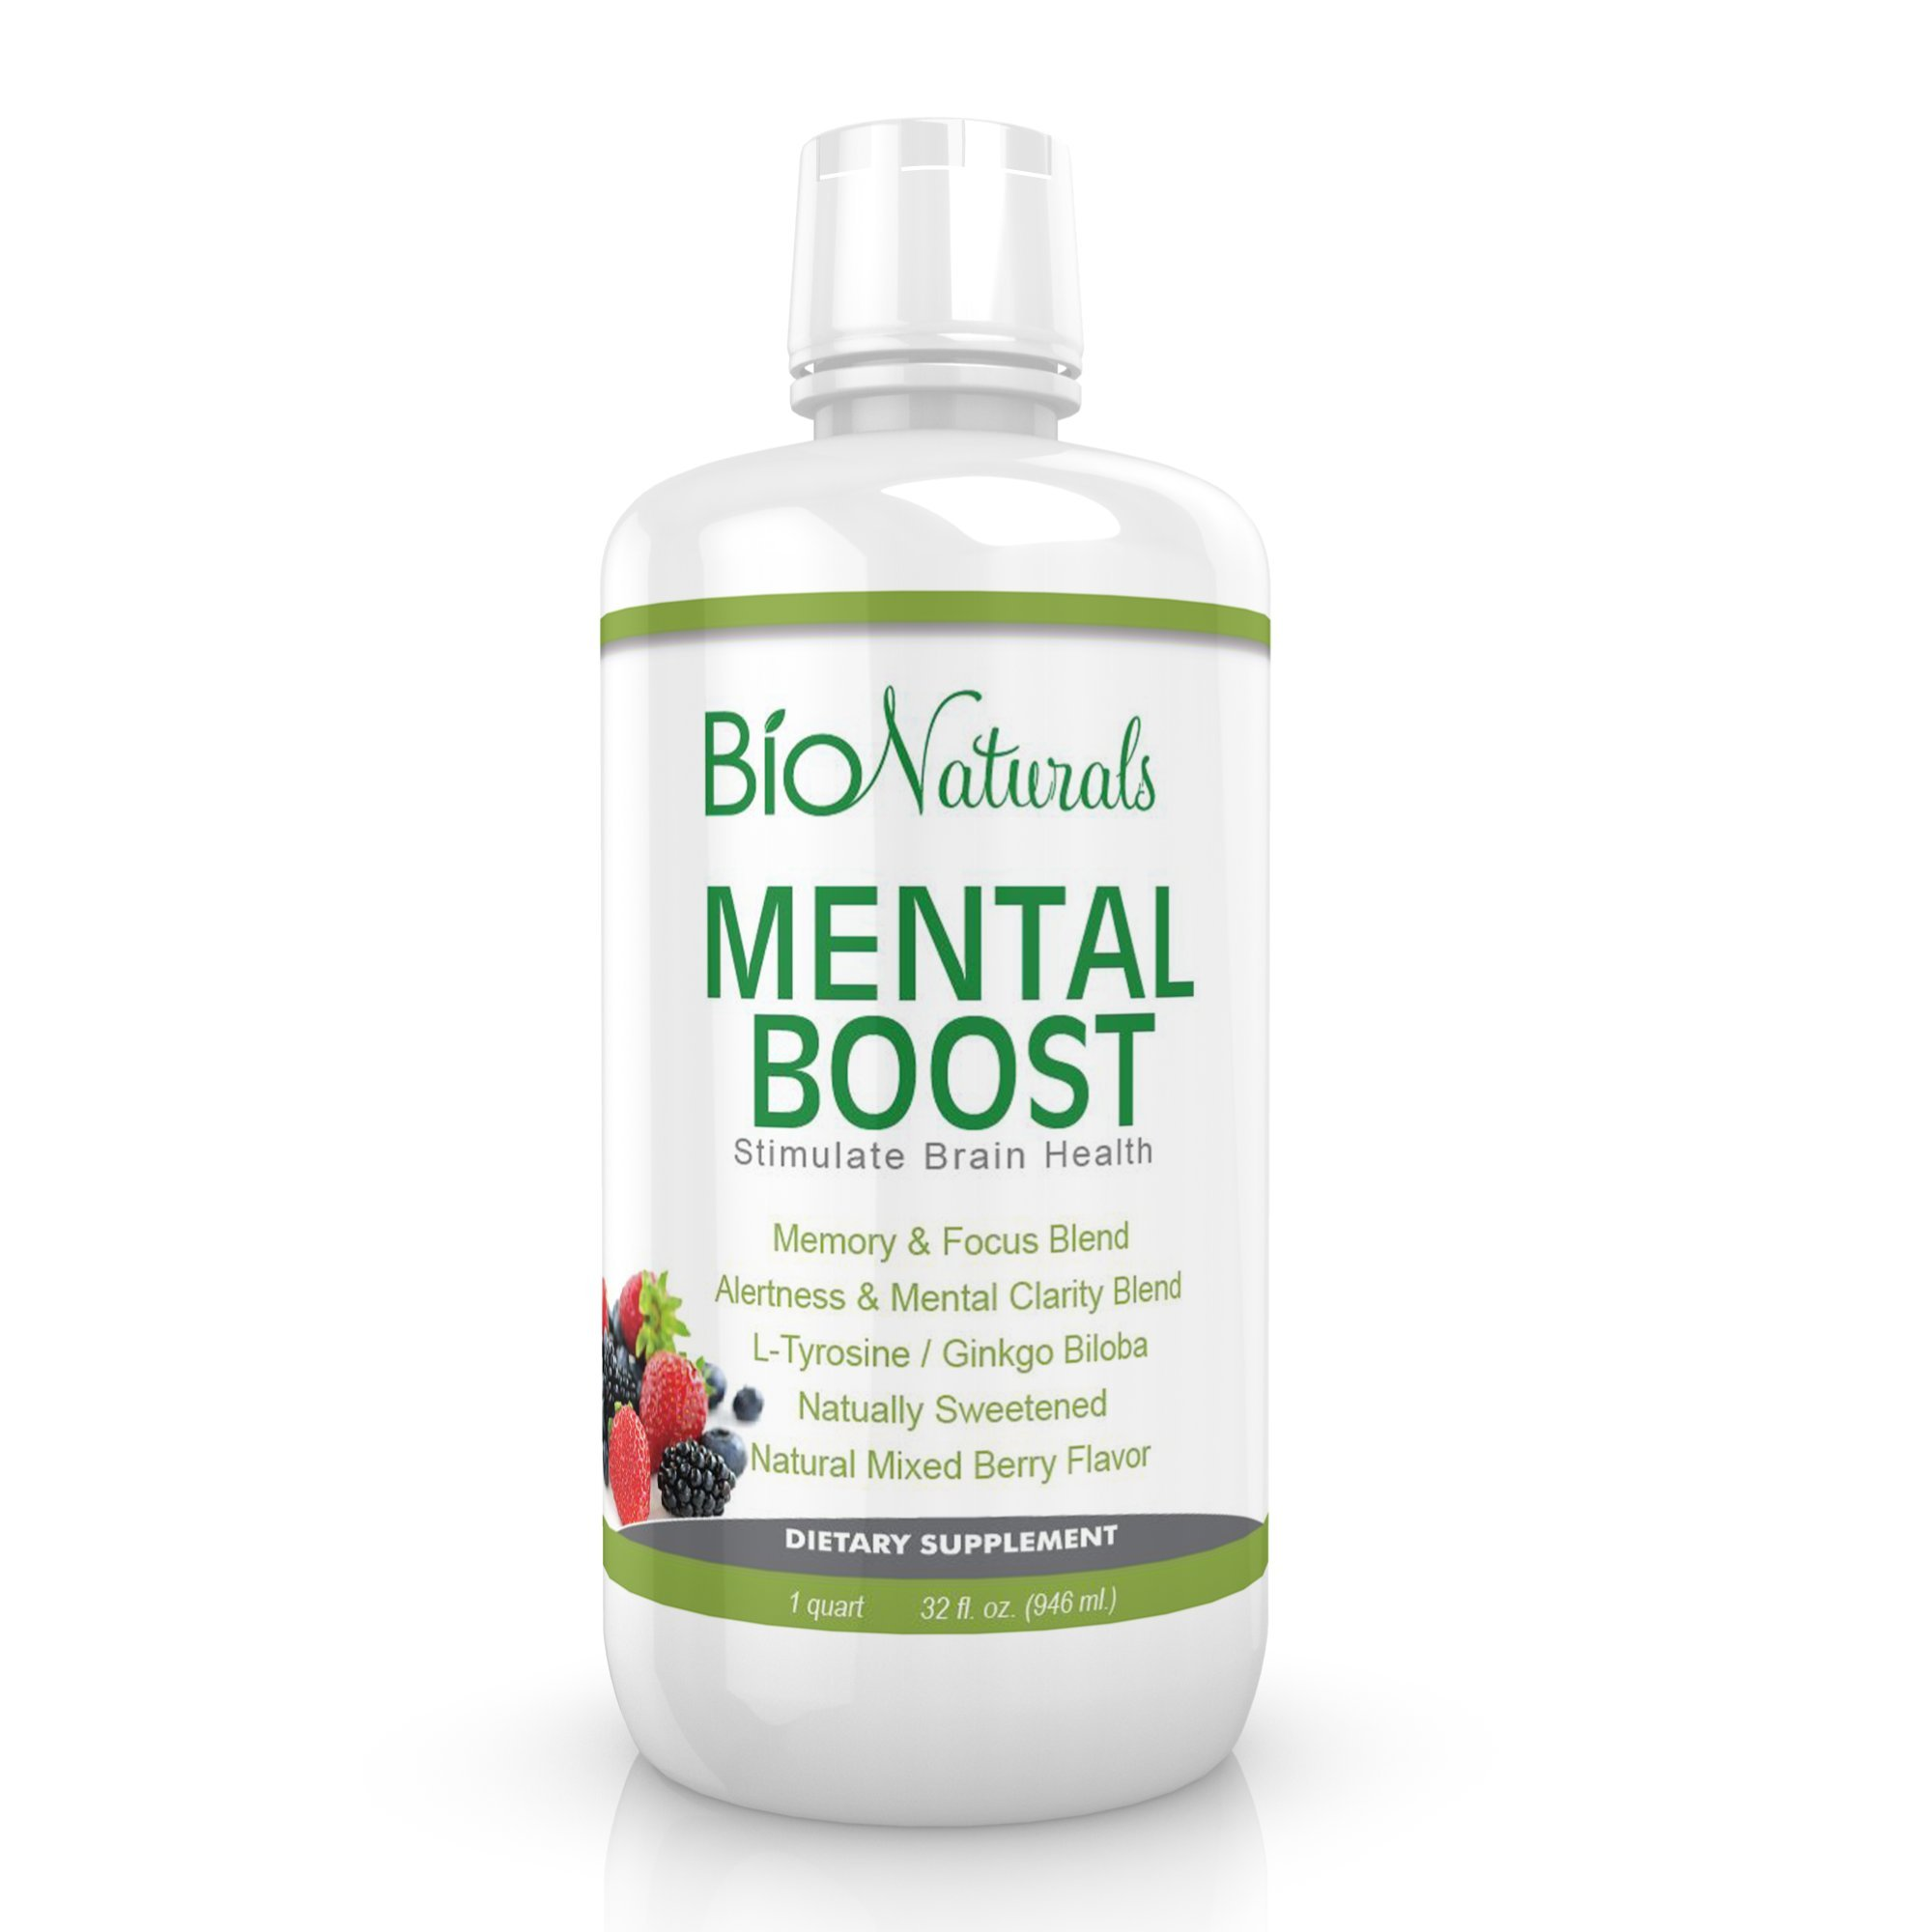 Mental Boost Liquid Nootropic Supplement - Enhance Brain Performance with Increased Memory, Alertness, Clarity & Focus - Contains Ginkgo Biloba, Huperzine-A, DMAE & More - 32 fl oz